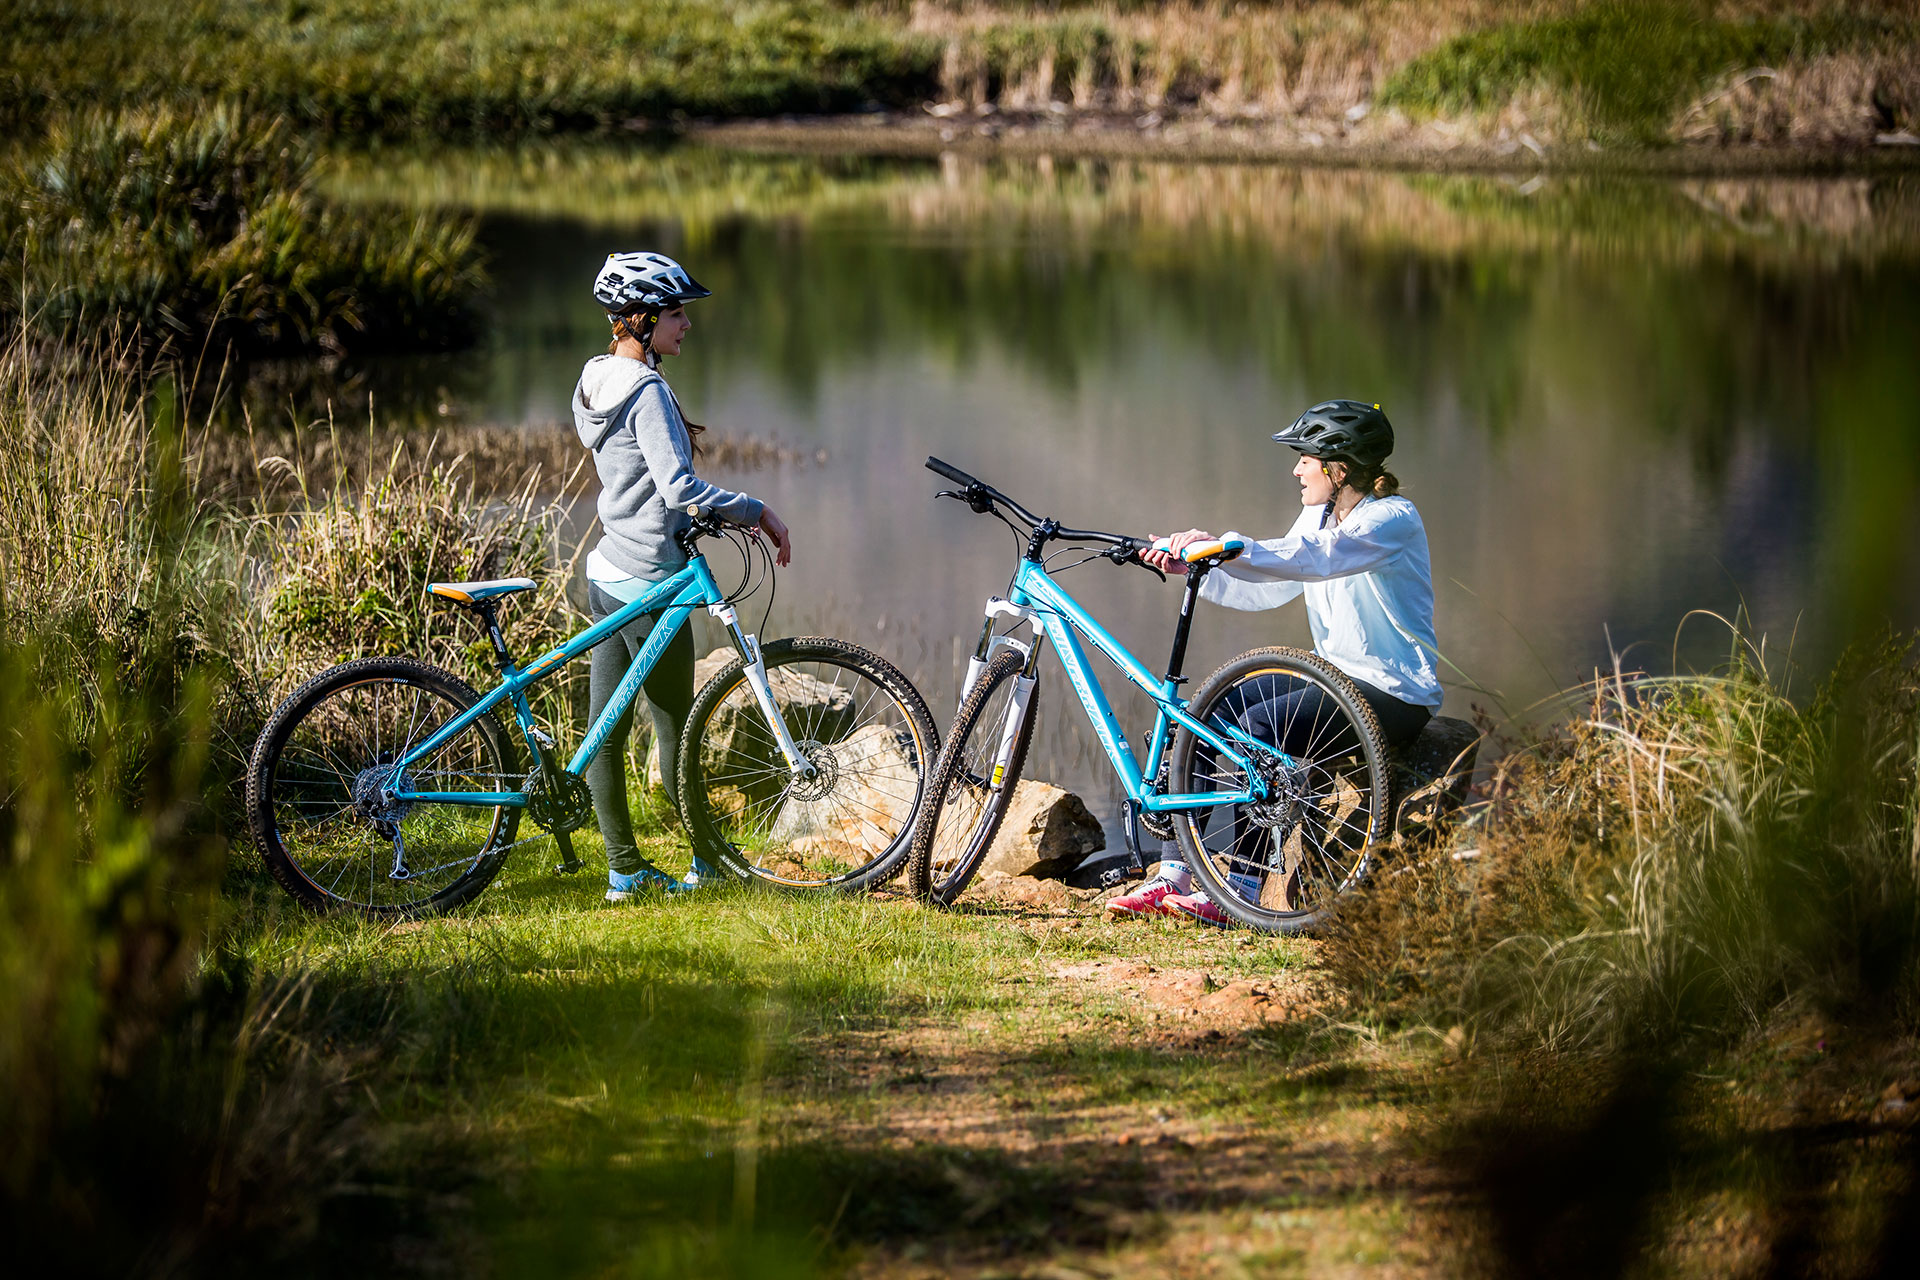 Cyclosport - Fun & Fitness for the whole family